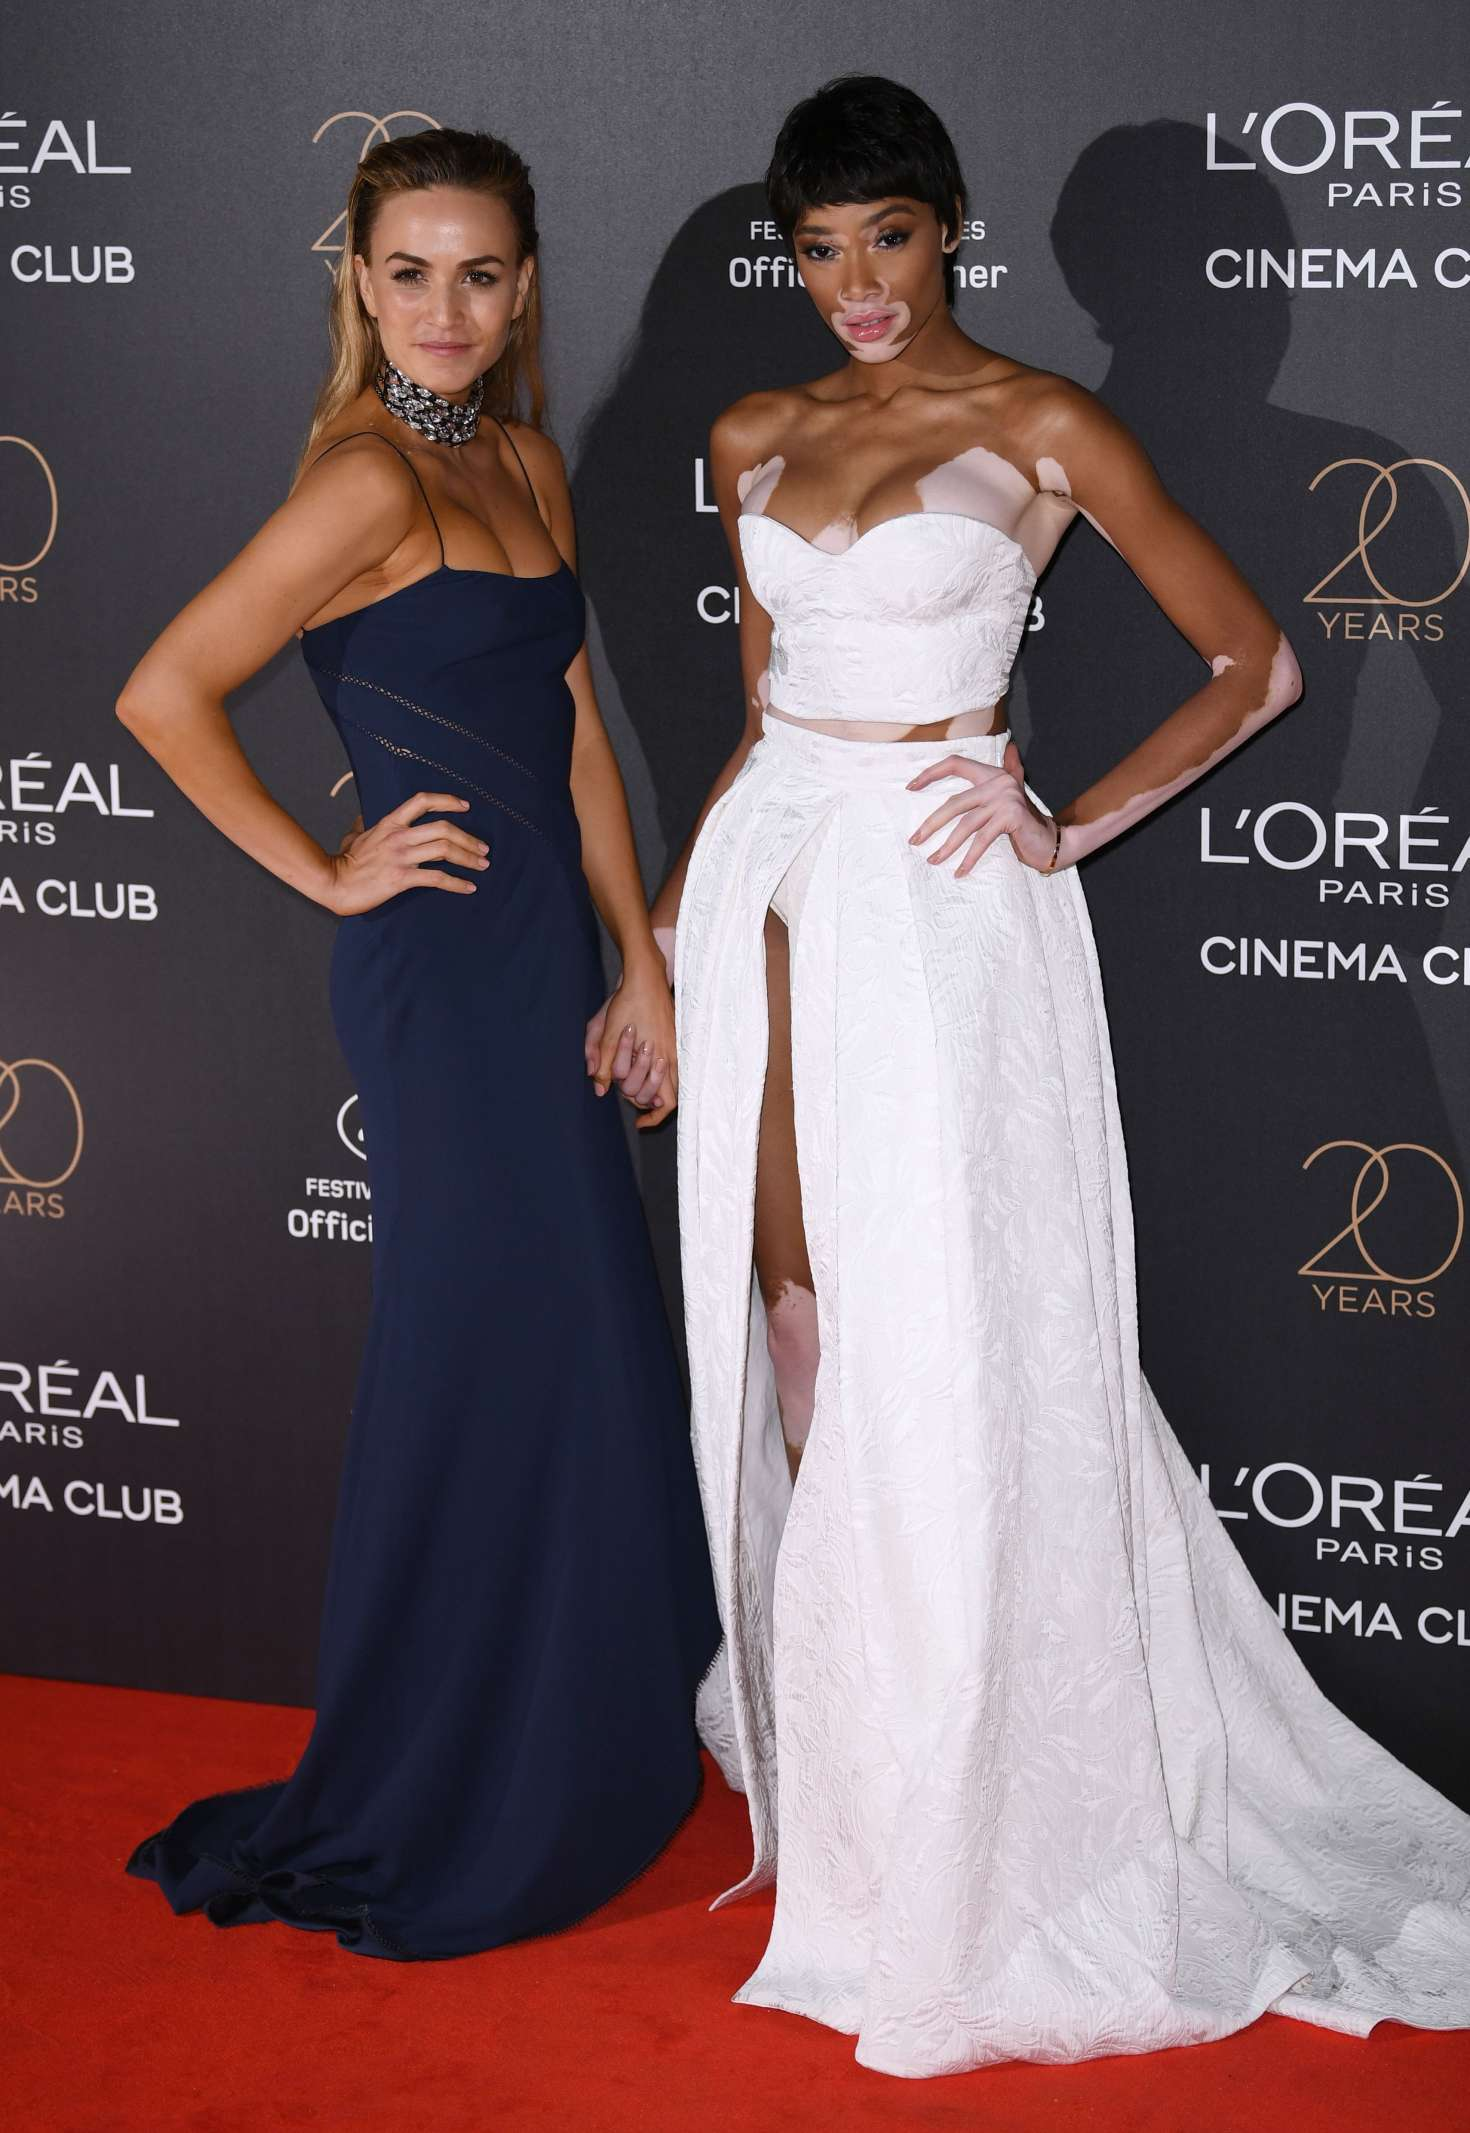 Carmen Jorda - L'Oreal 20th Anniversary Party in Cannes